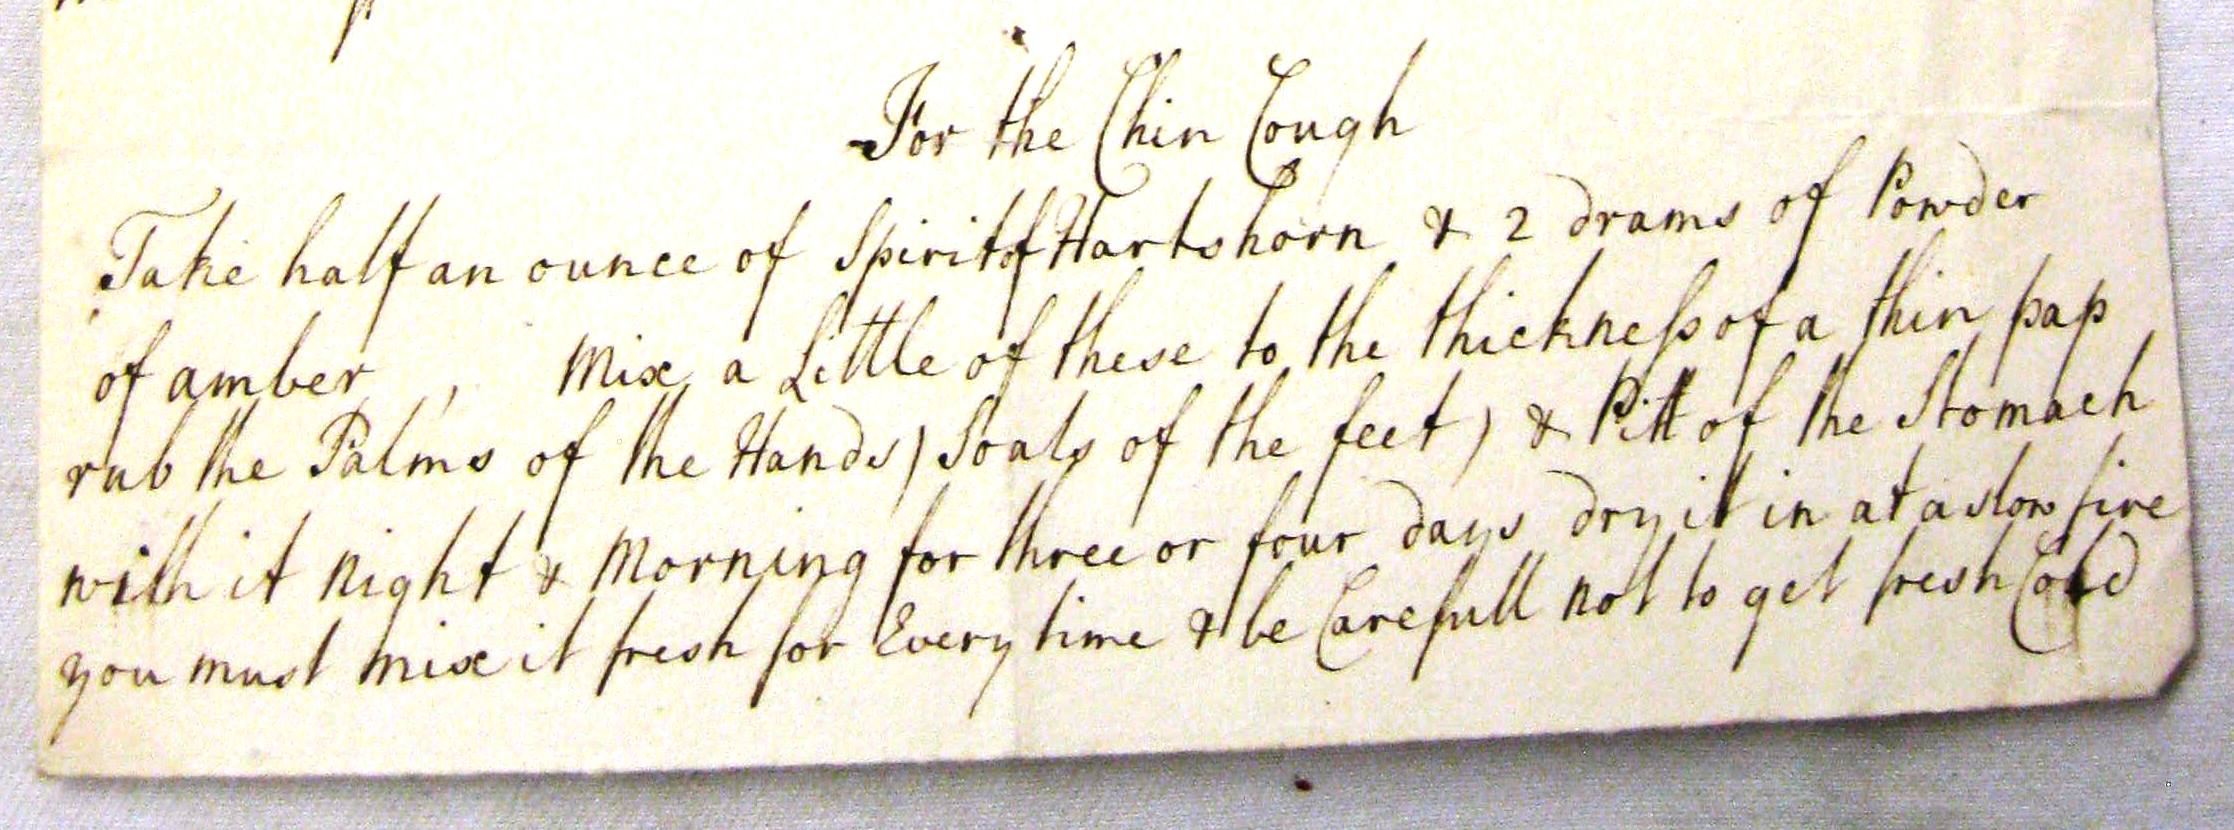 Herefordshire County Record Office, J 38/8210 S. Phillips to Mrs Witherstone January 6, 1756